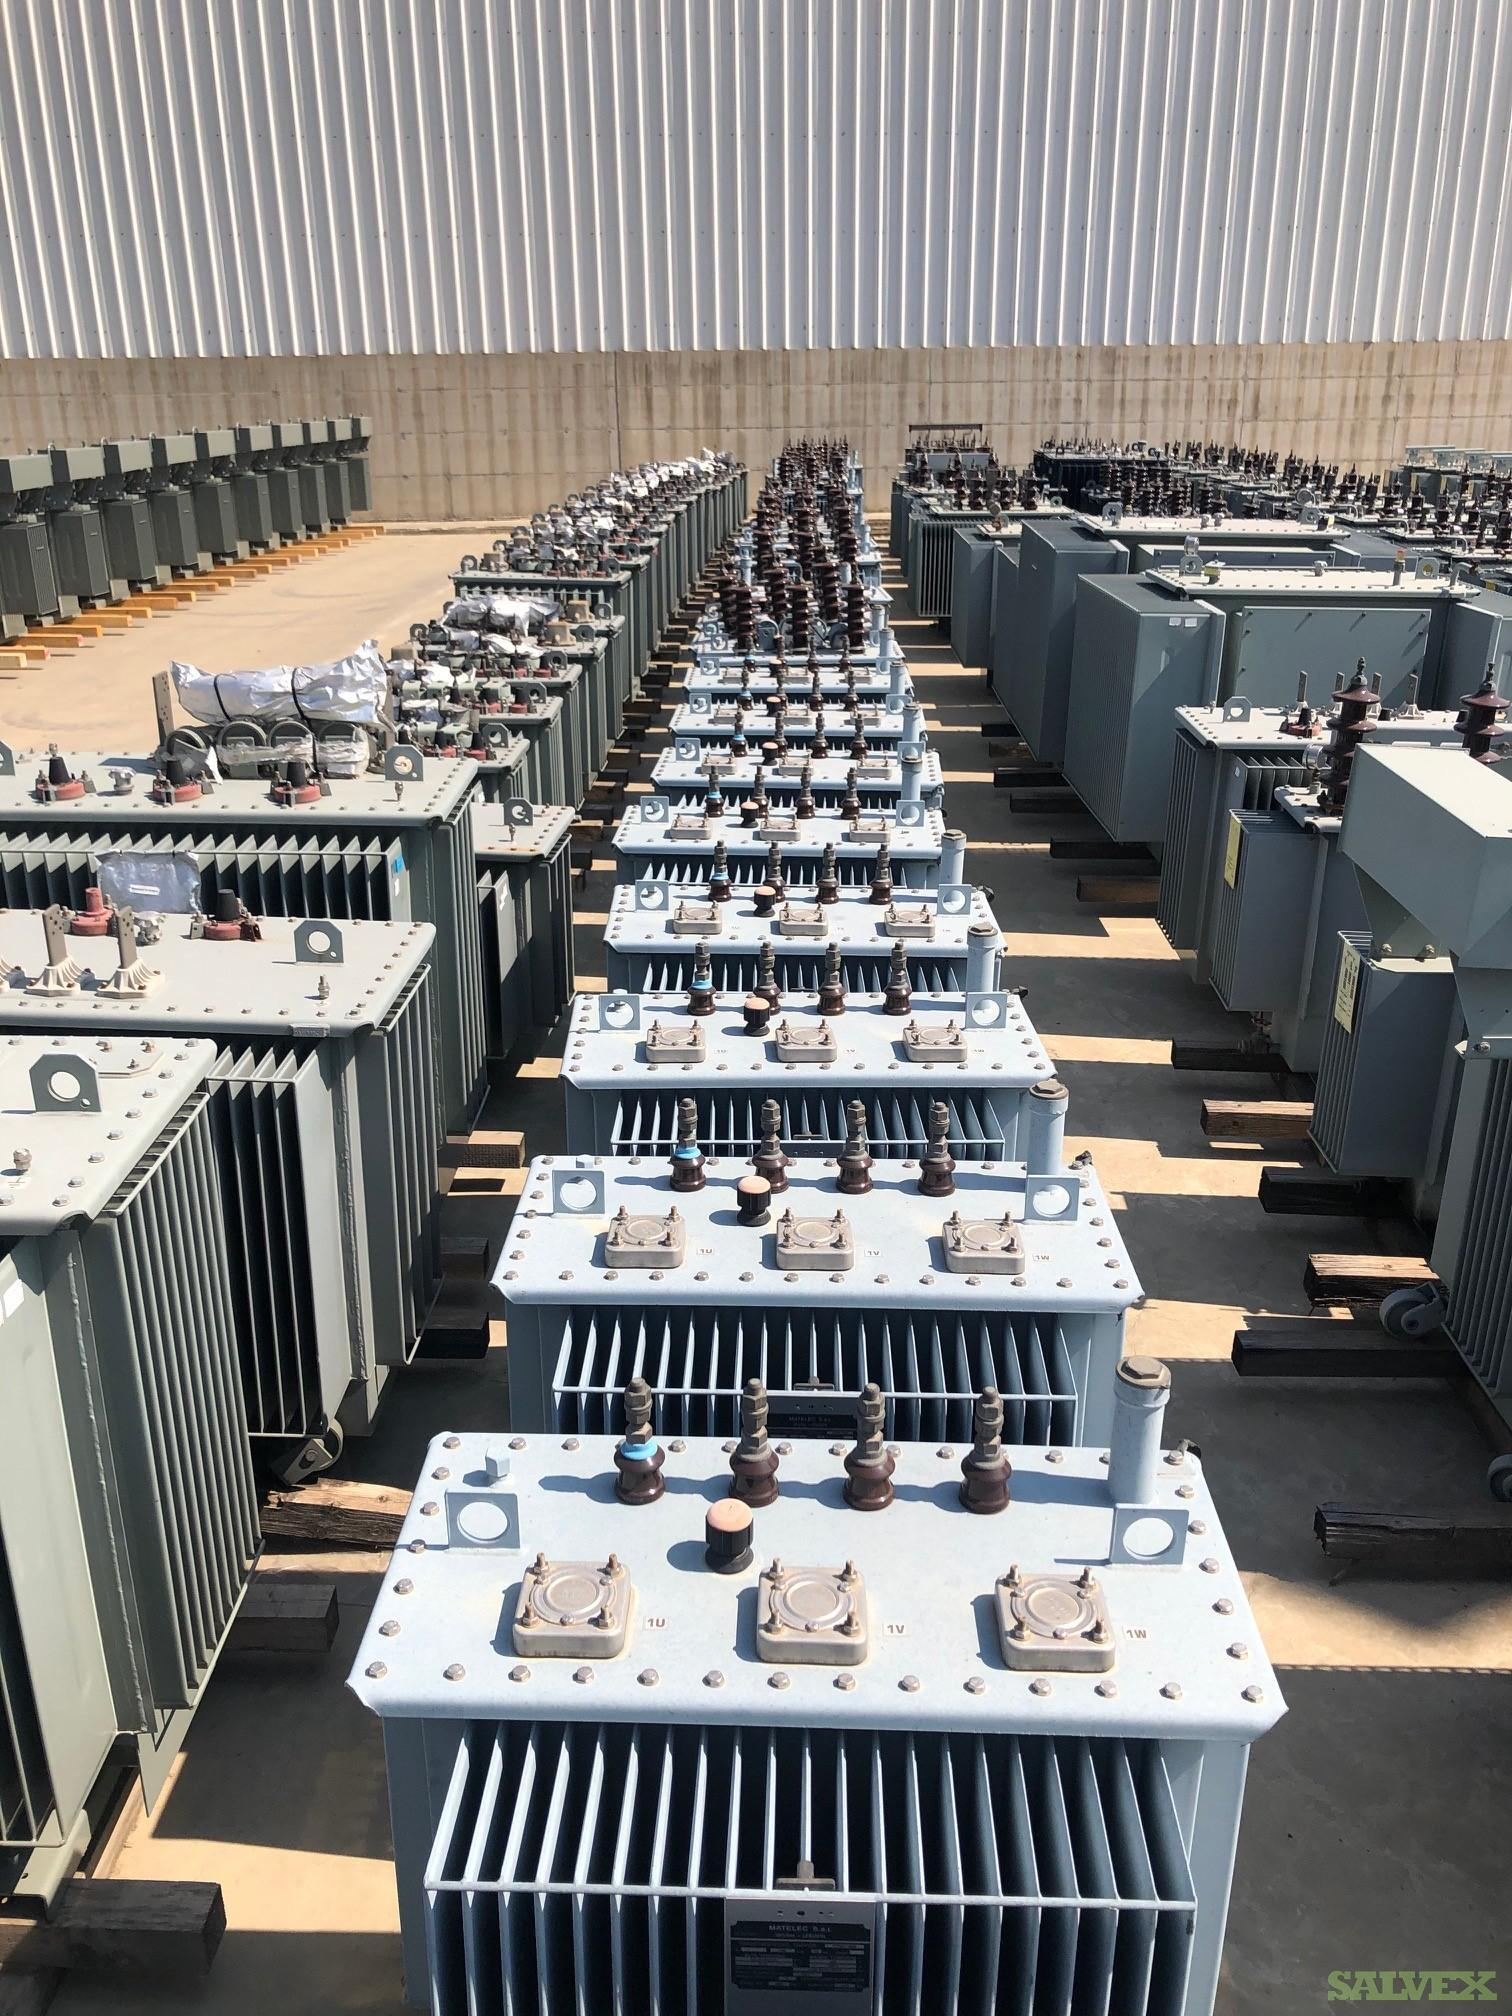 Power Transformers from 50 to 1000 kVA (139 Units) see detail list